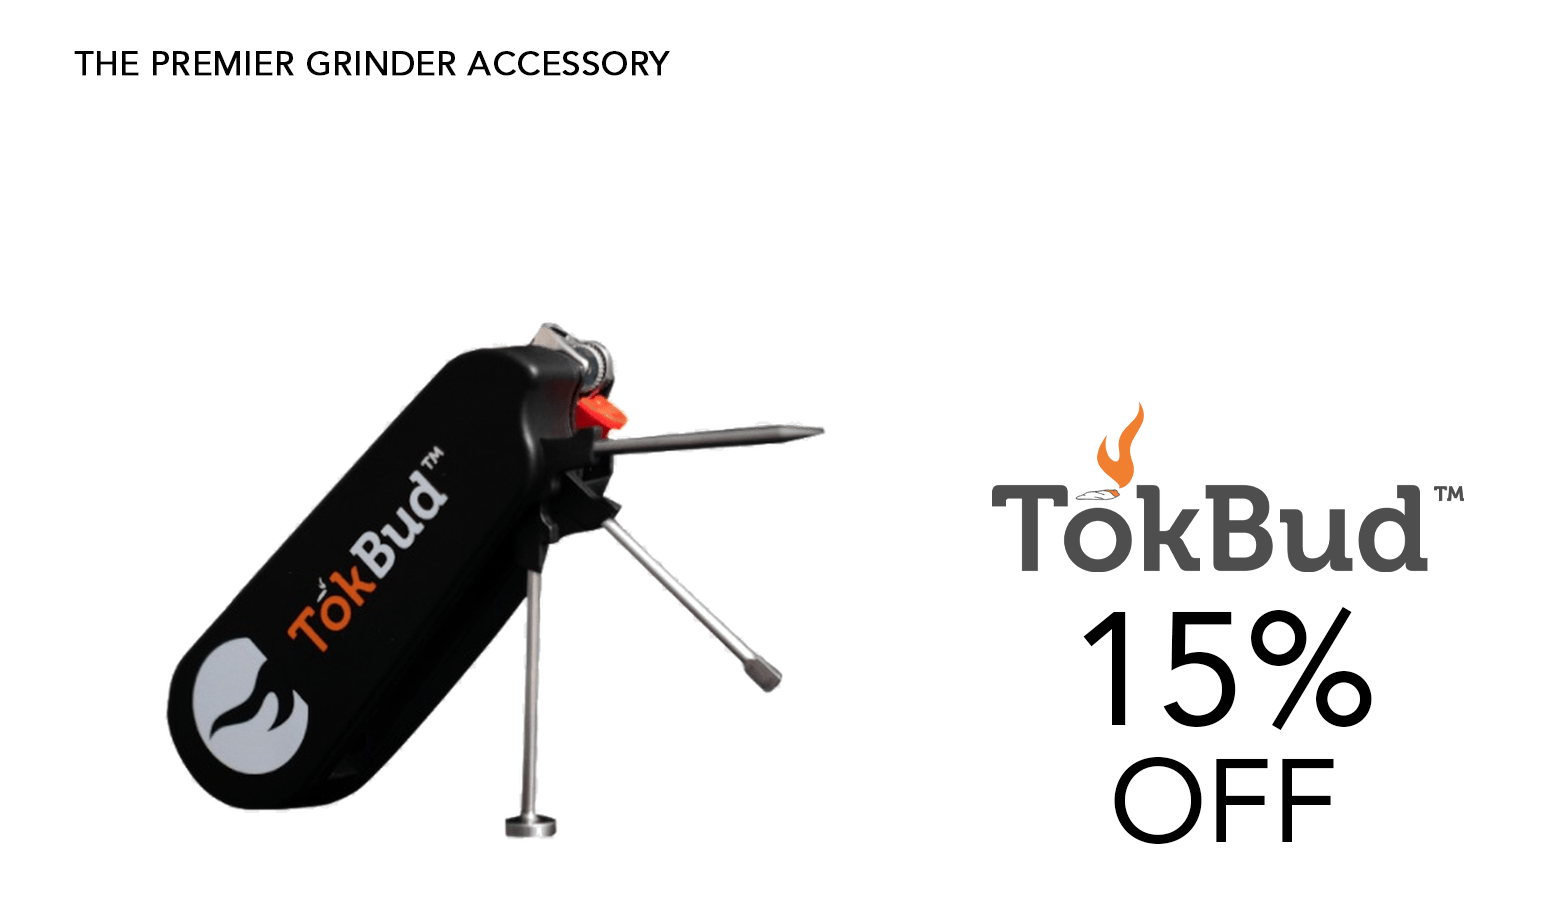 TokBud By Elevated Machines Smoking Accessories Coupon Code Offer Website